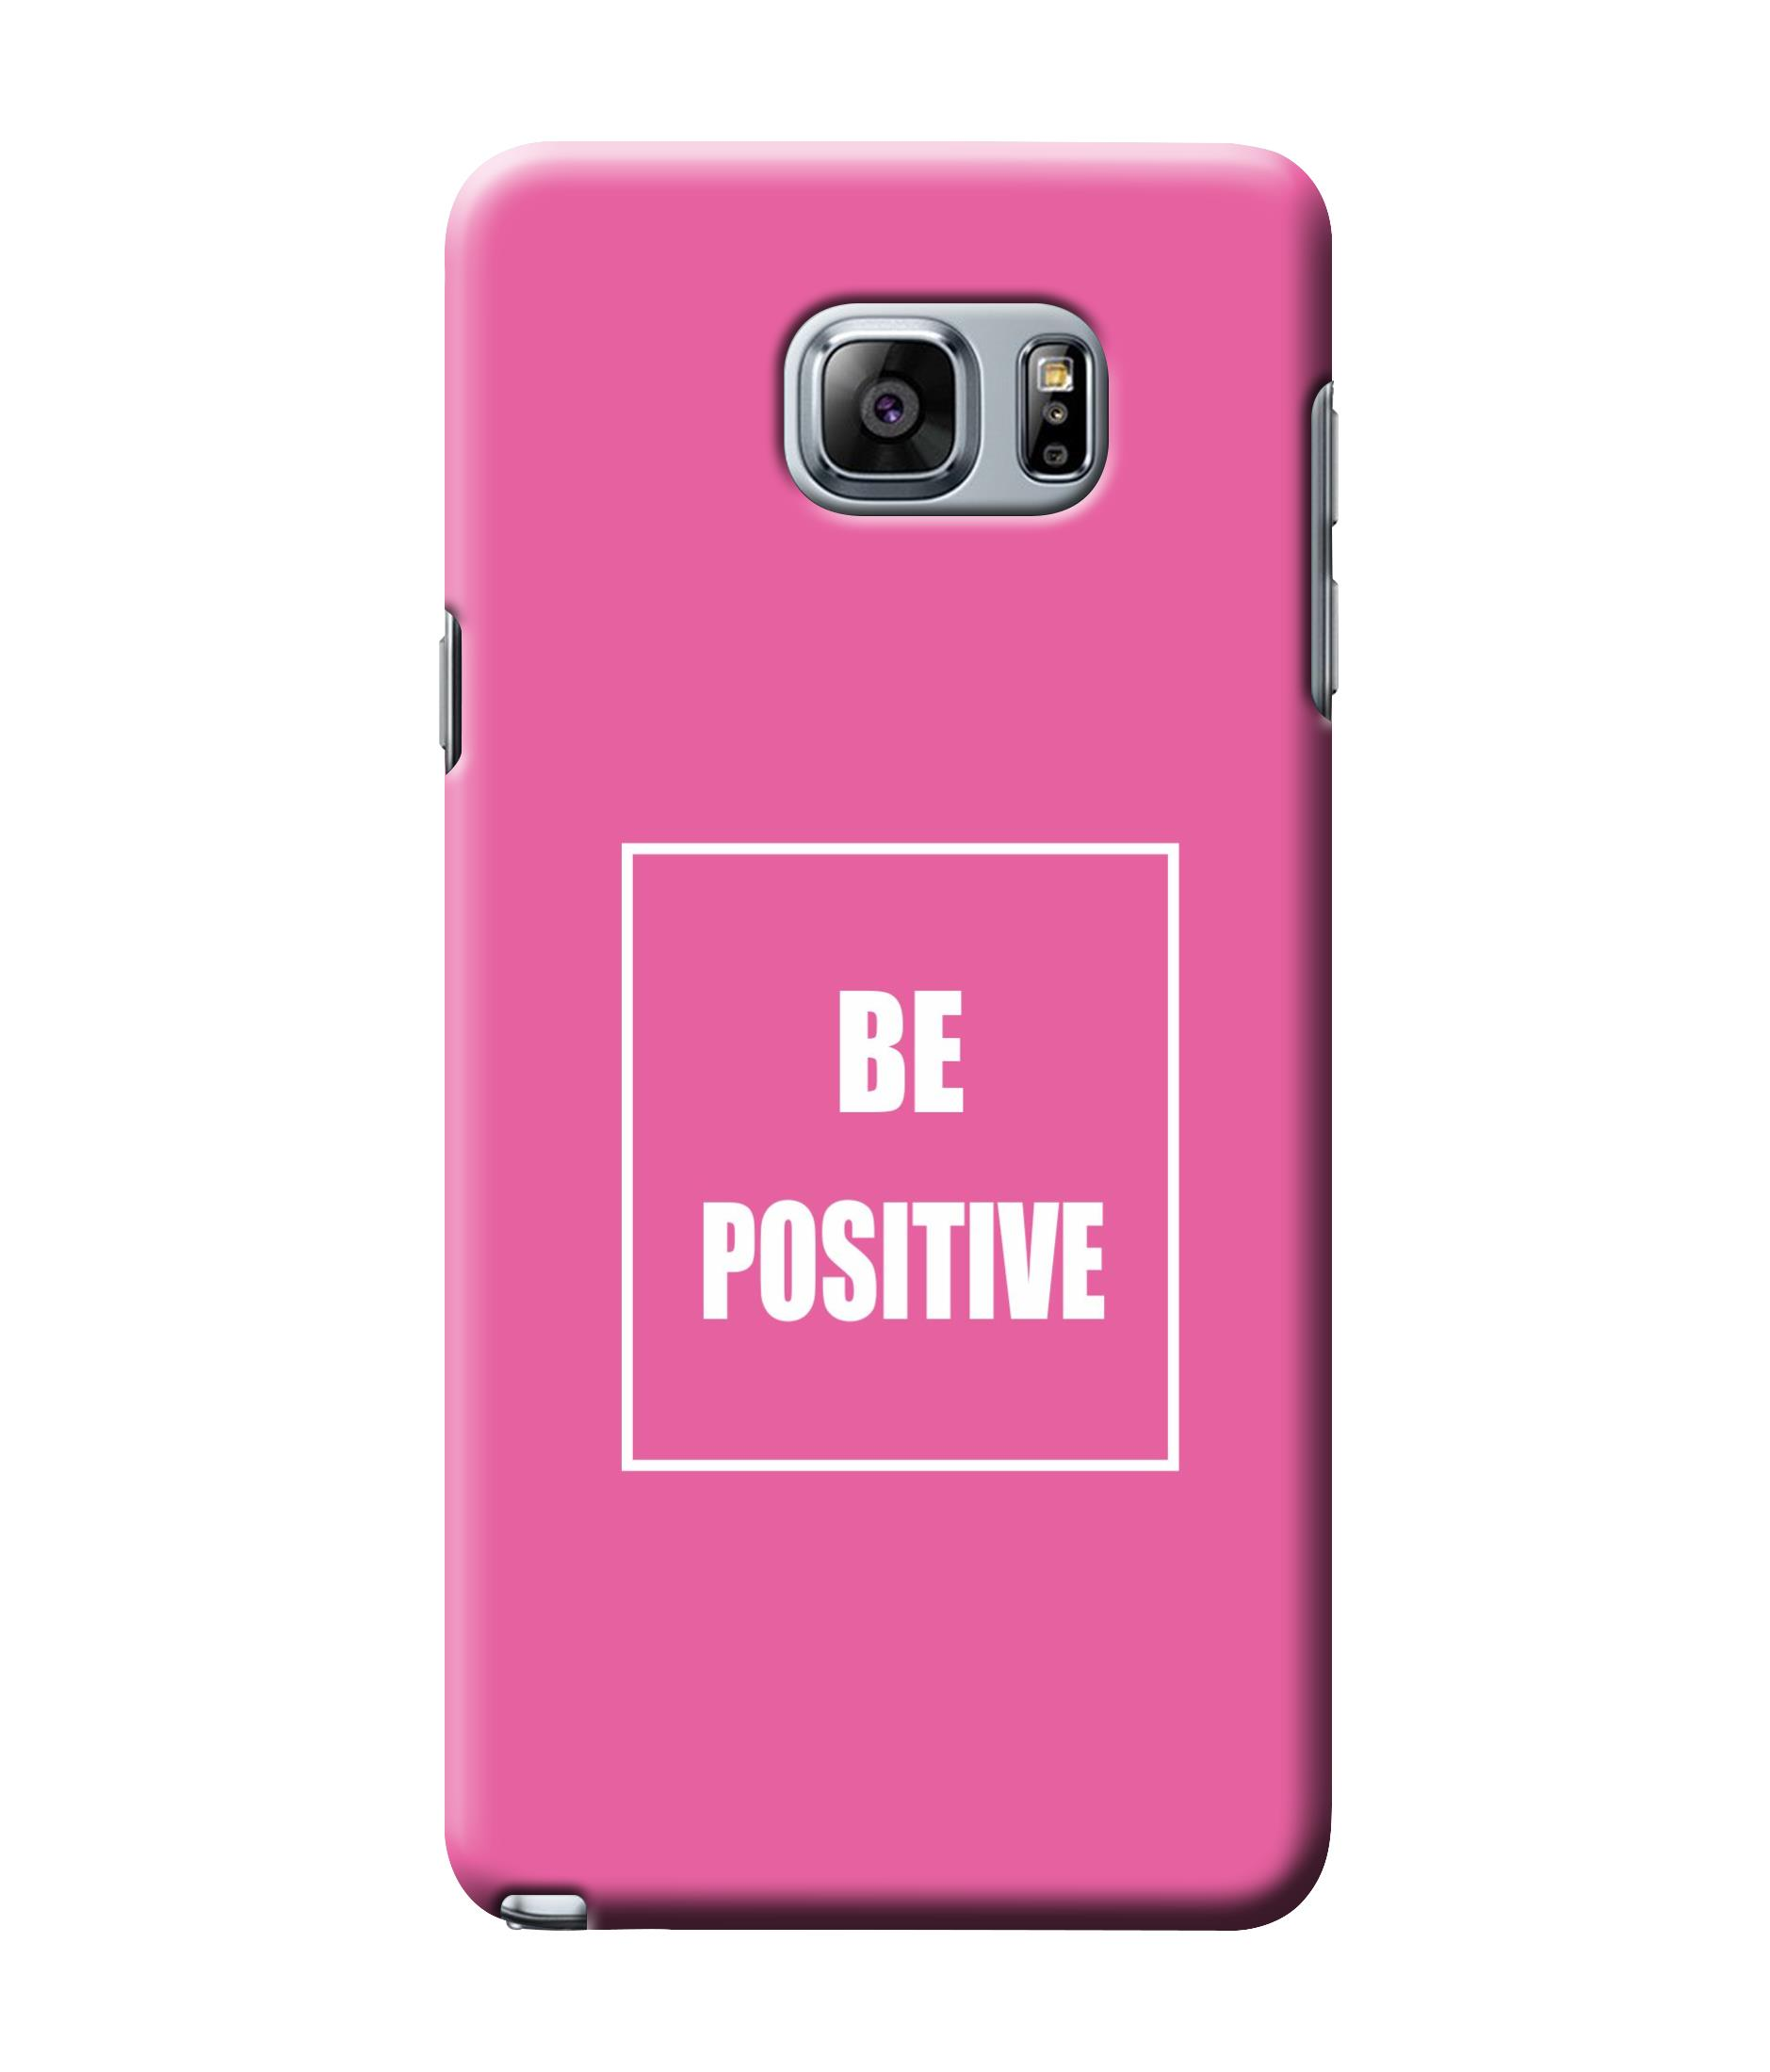 caseophile2 Samsung Galaxy Note 5 Be Positive Pink Mobile Case